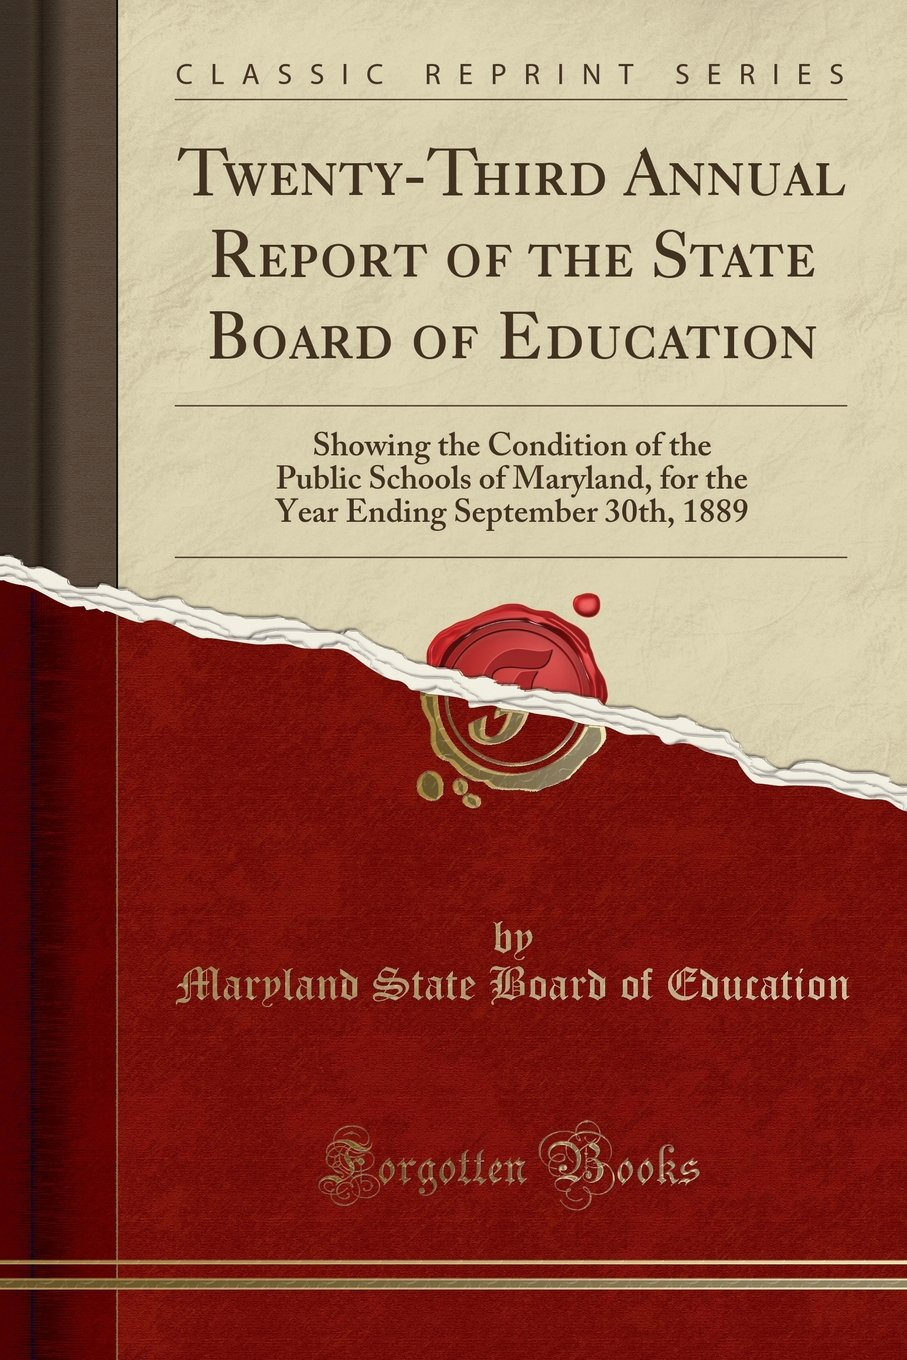 Twenty-Third Annual Report of the State Board of Education: Showing the Condition of the Public Schools of Maryland, for the Year Ending September 30th, 1889 (Classic Reprint) pdf epub